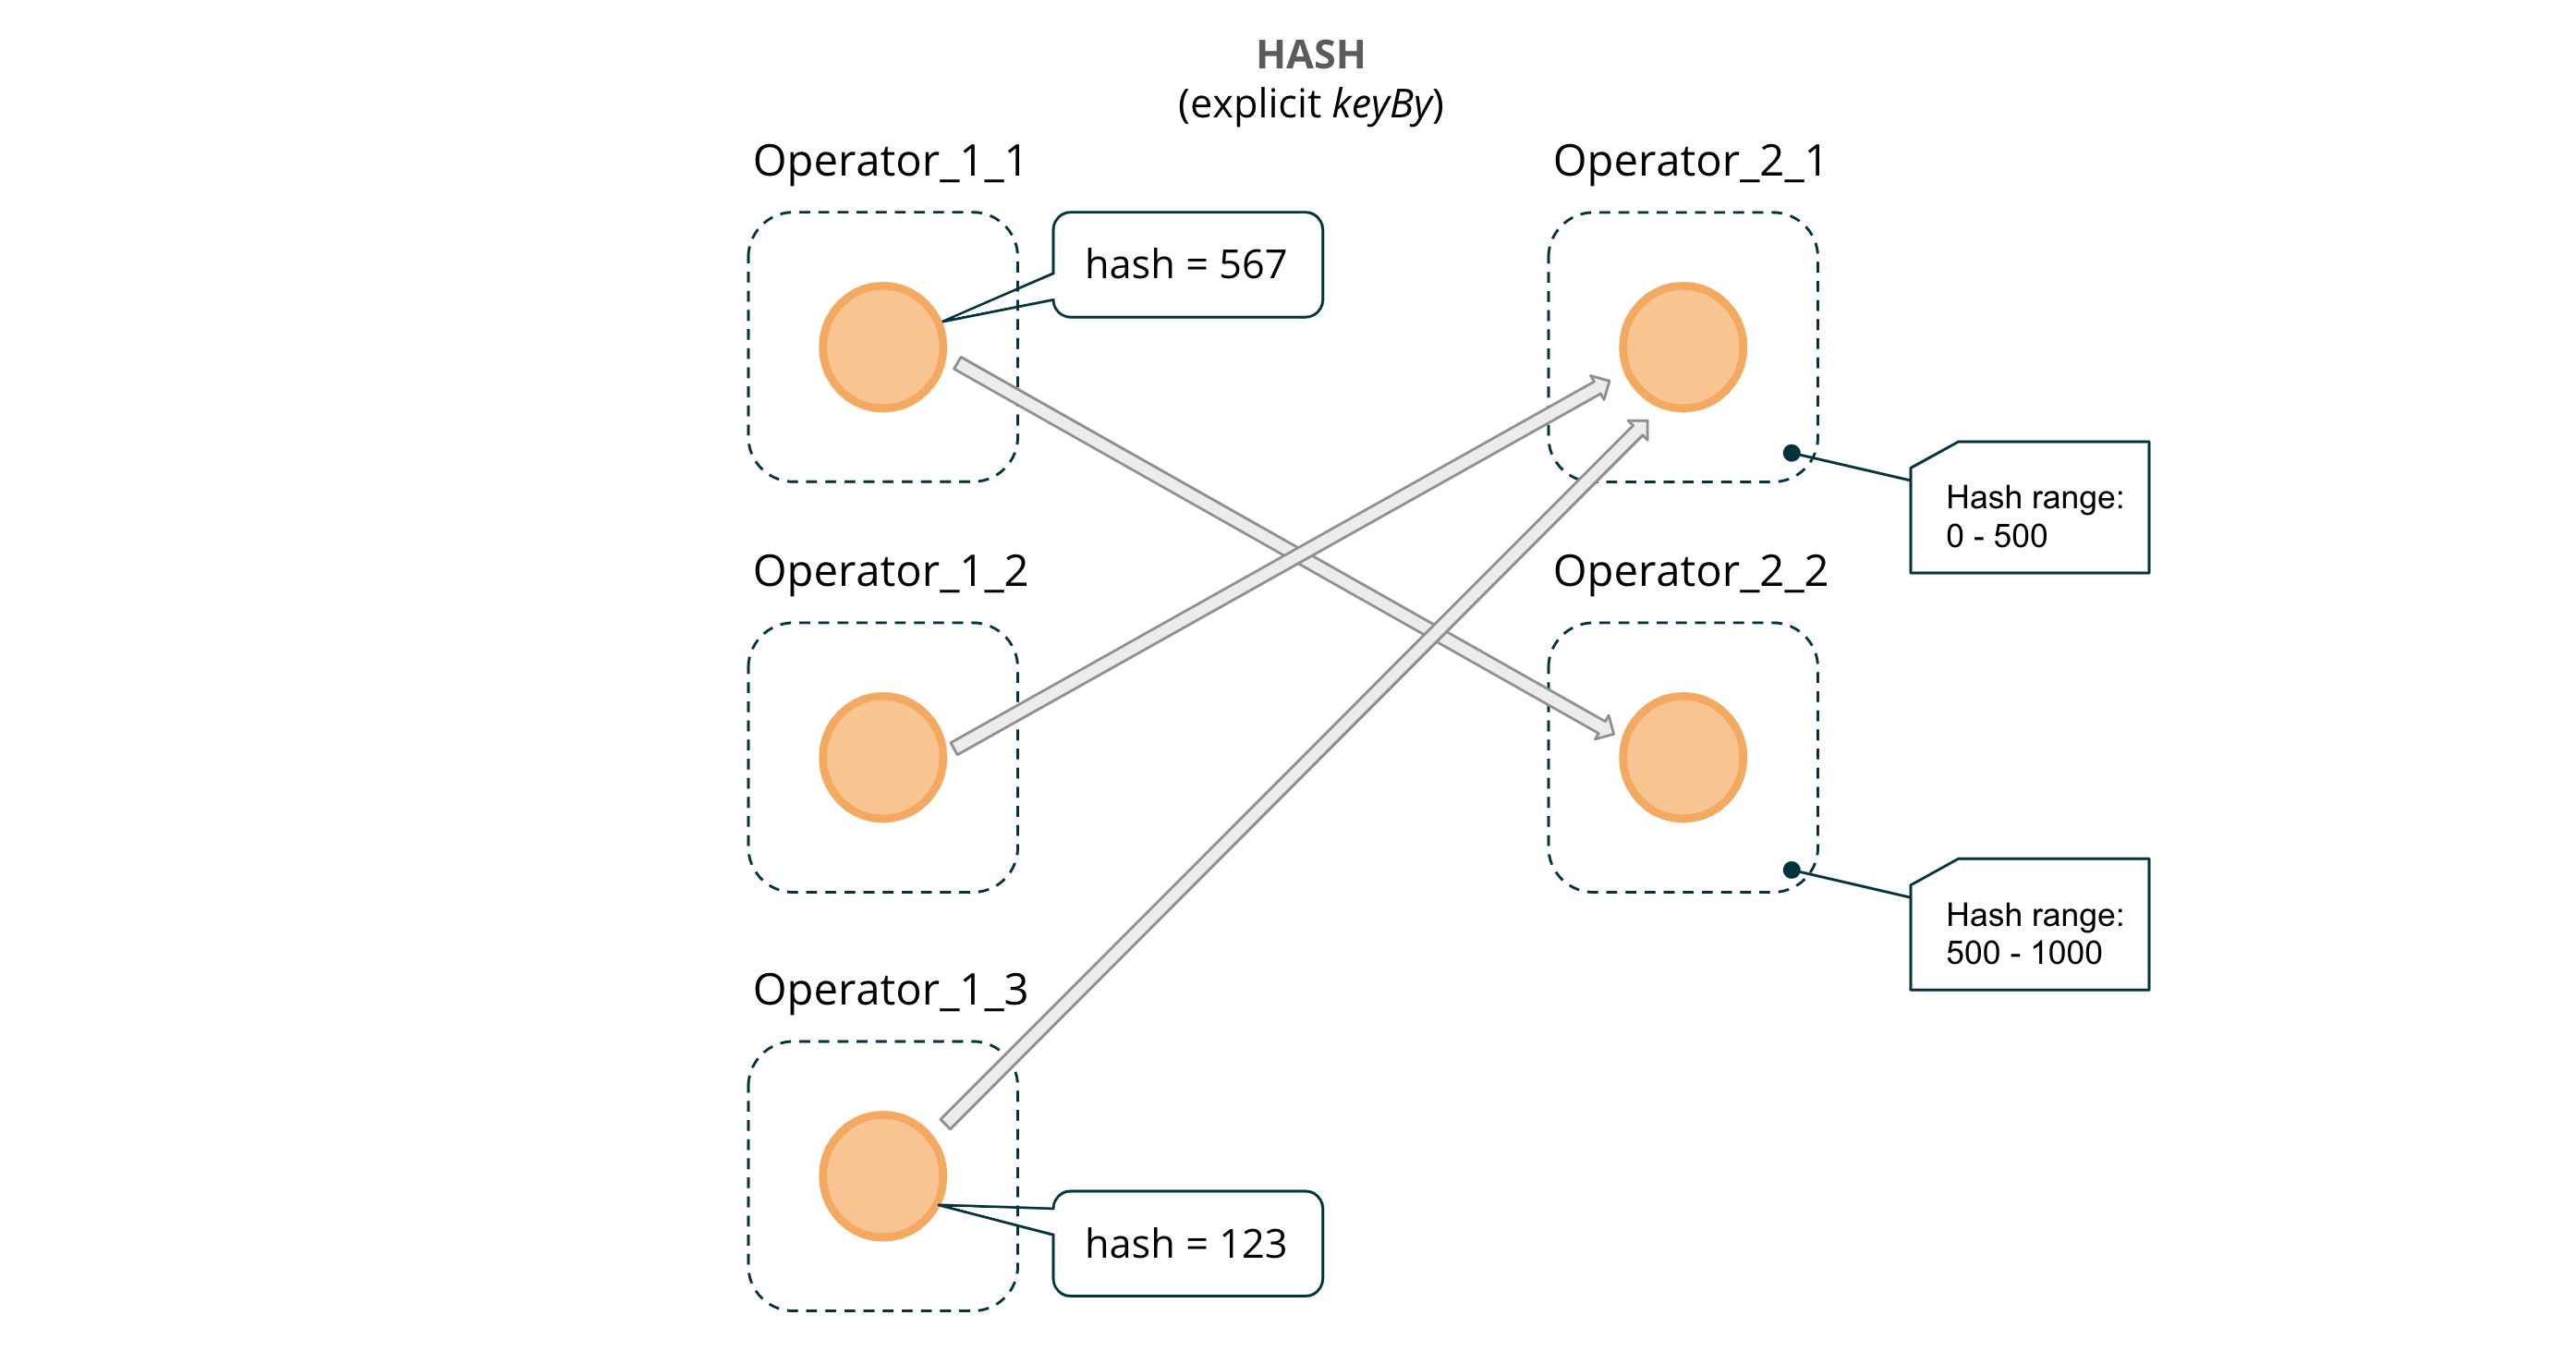 Figure 4: HASHED message passing across operator instances (via `keyBy`)